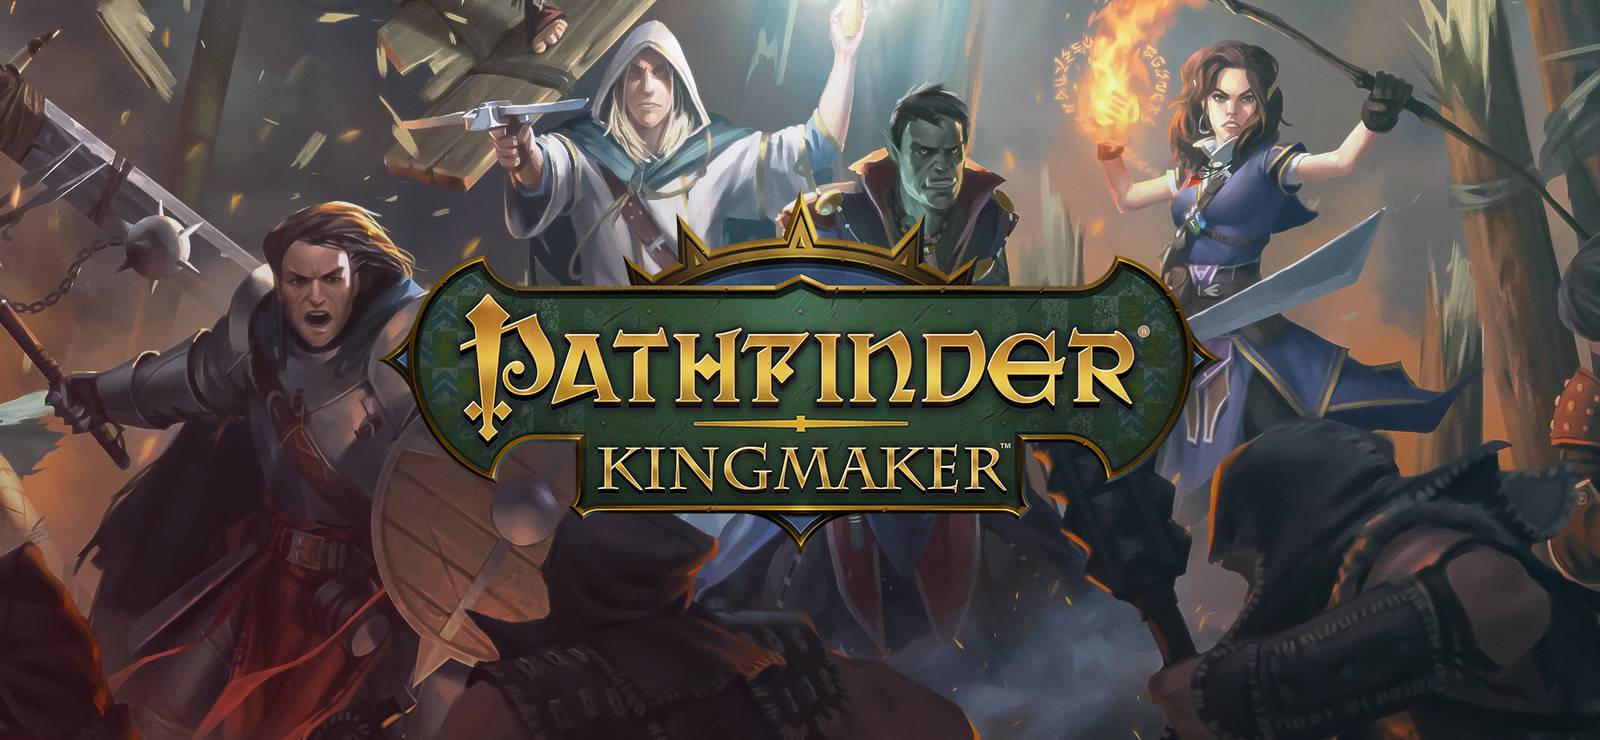 Pathfinder: Kingmaker (2018)